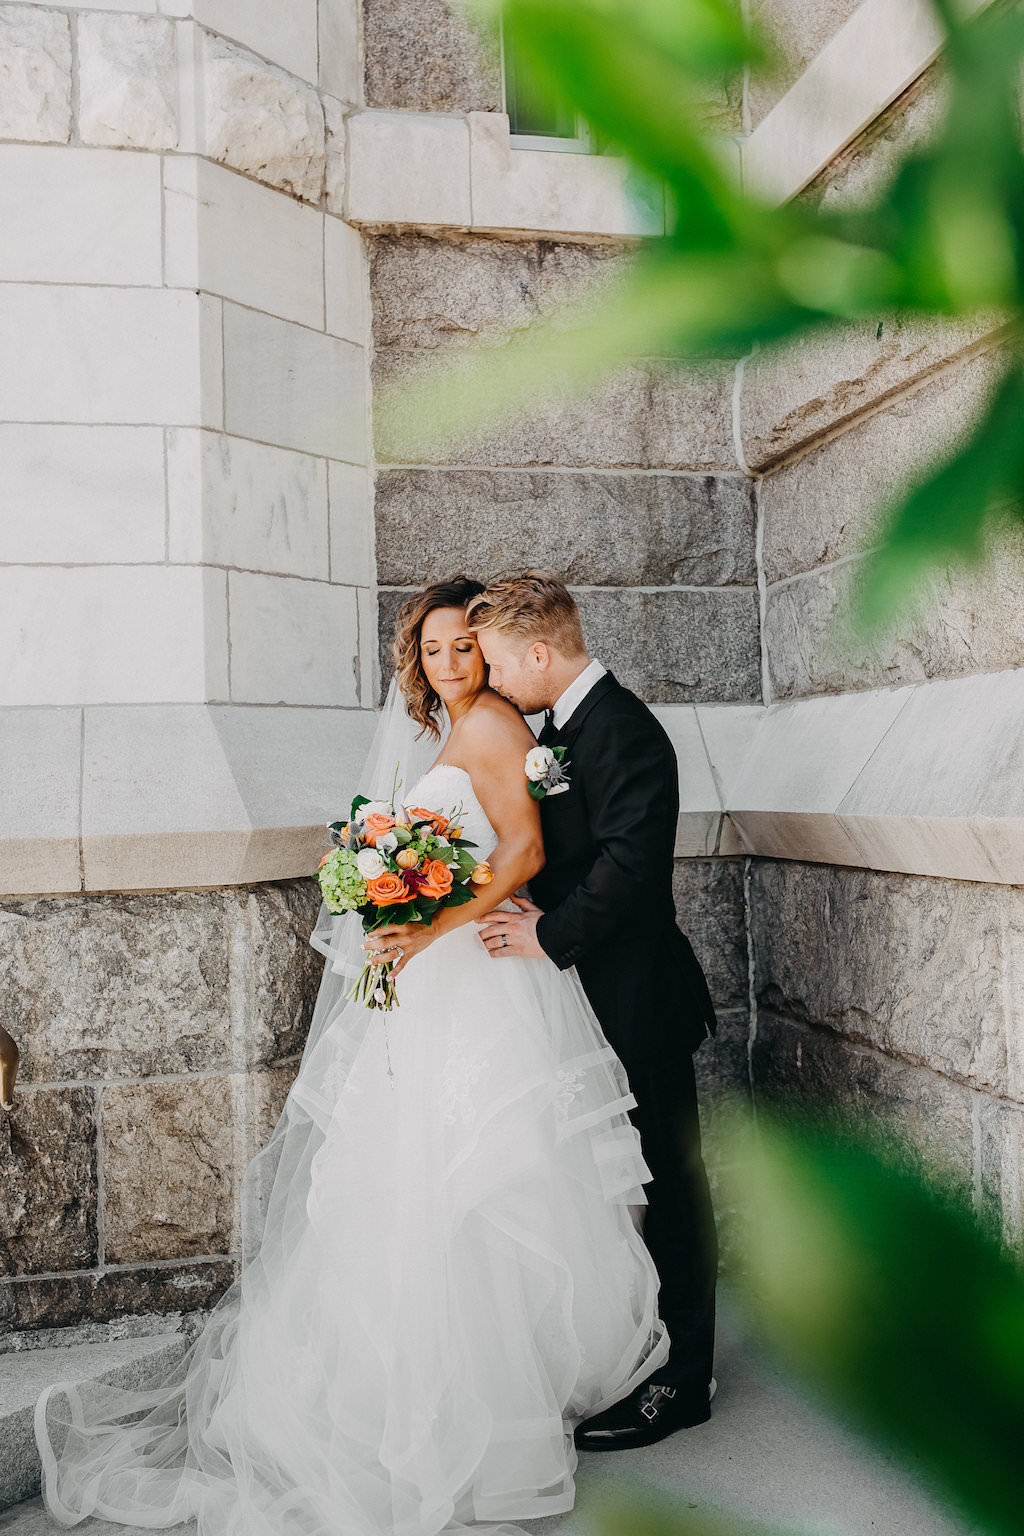 Outdoor Church Wedding Ceremony Exit Portrait with Tropical Orange and Greenery Bridal Bouquet   Tampa Florida Wedding Photographer Rad Red Creative